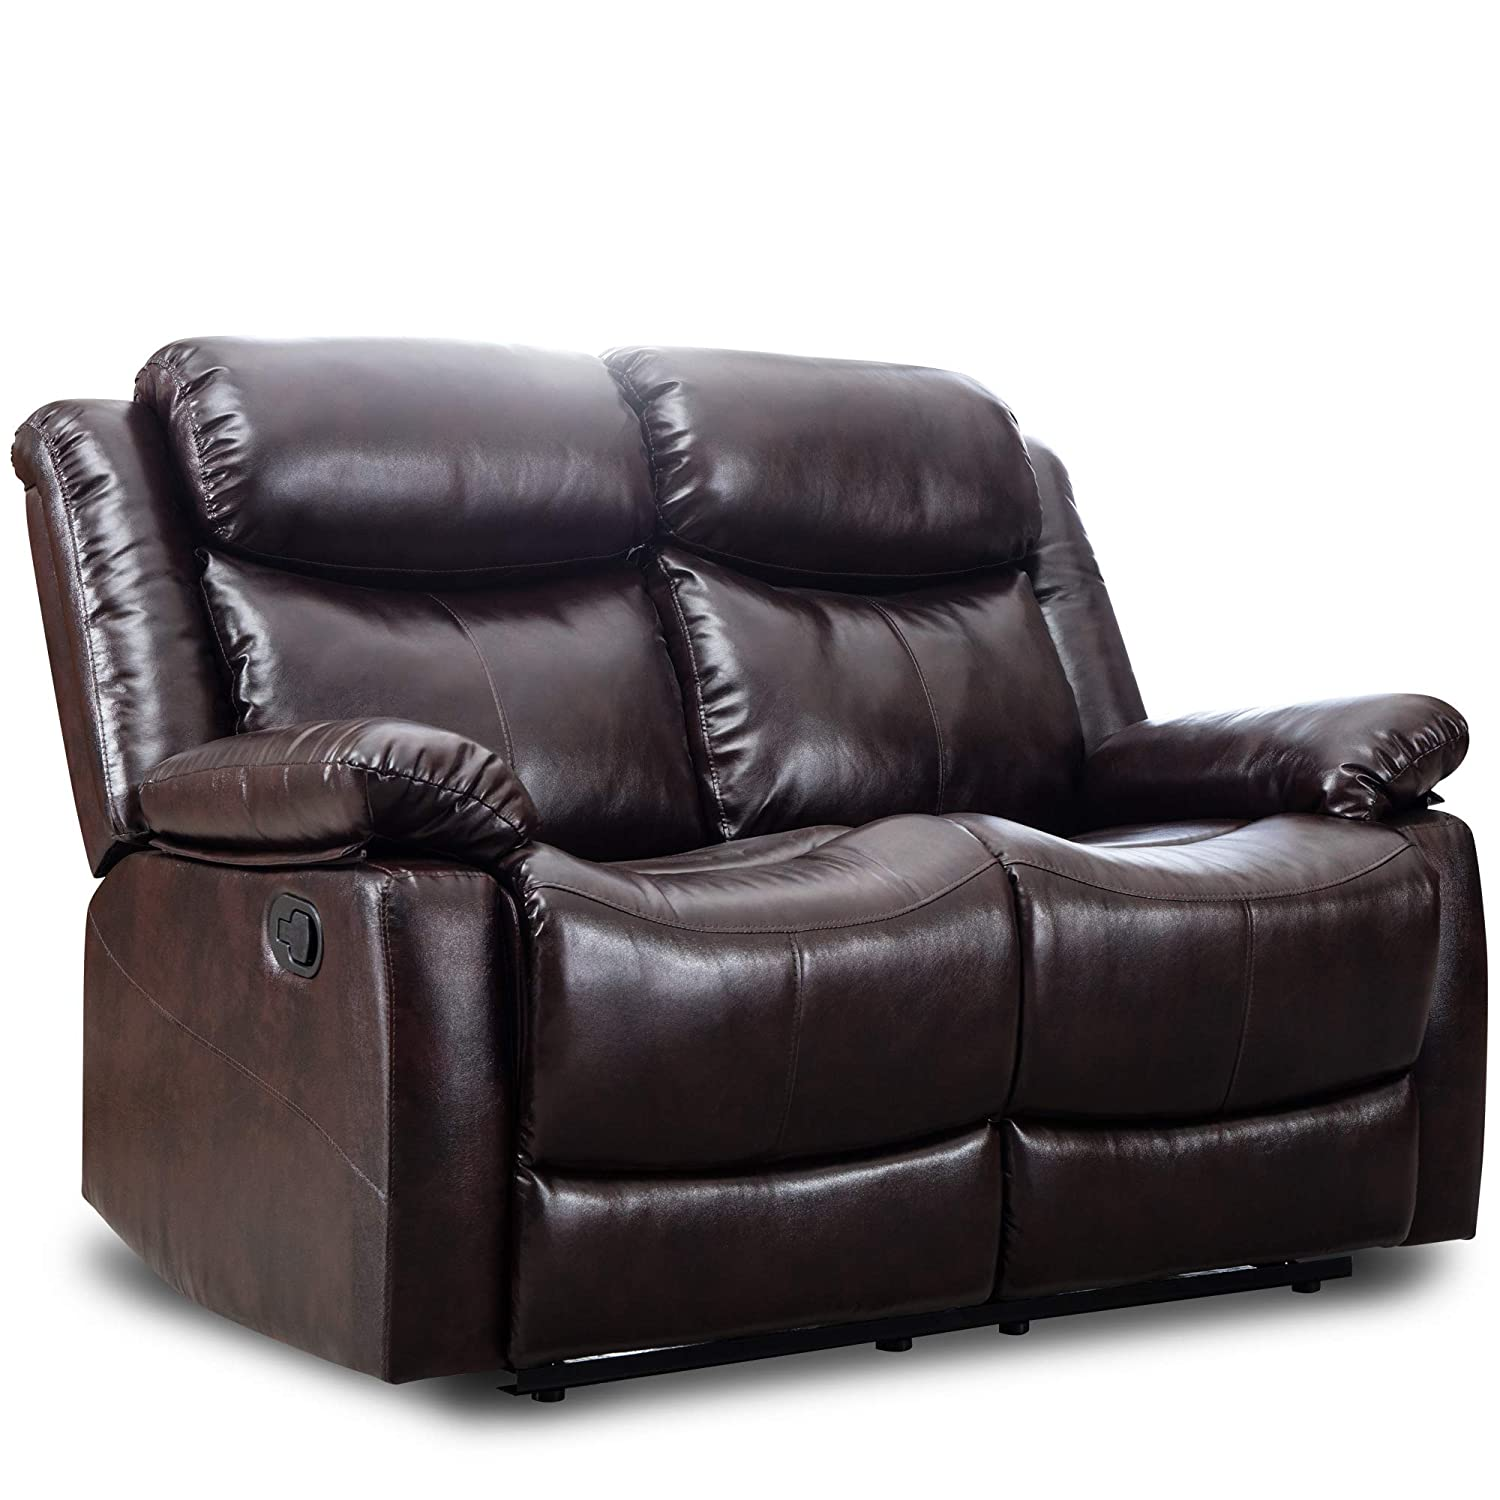 Harper & Bright Designs Loveseat Recliner Manual Reclining Sofa Seat Classic Recliner Leather Sofa Set for Living Room